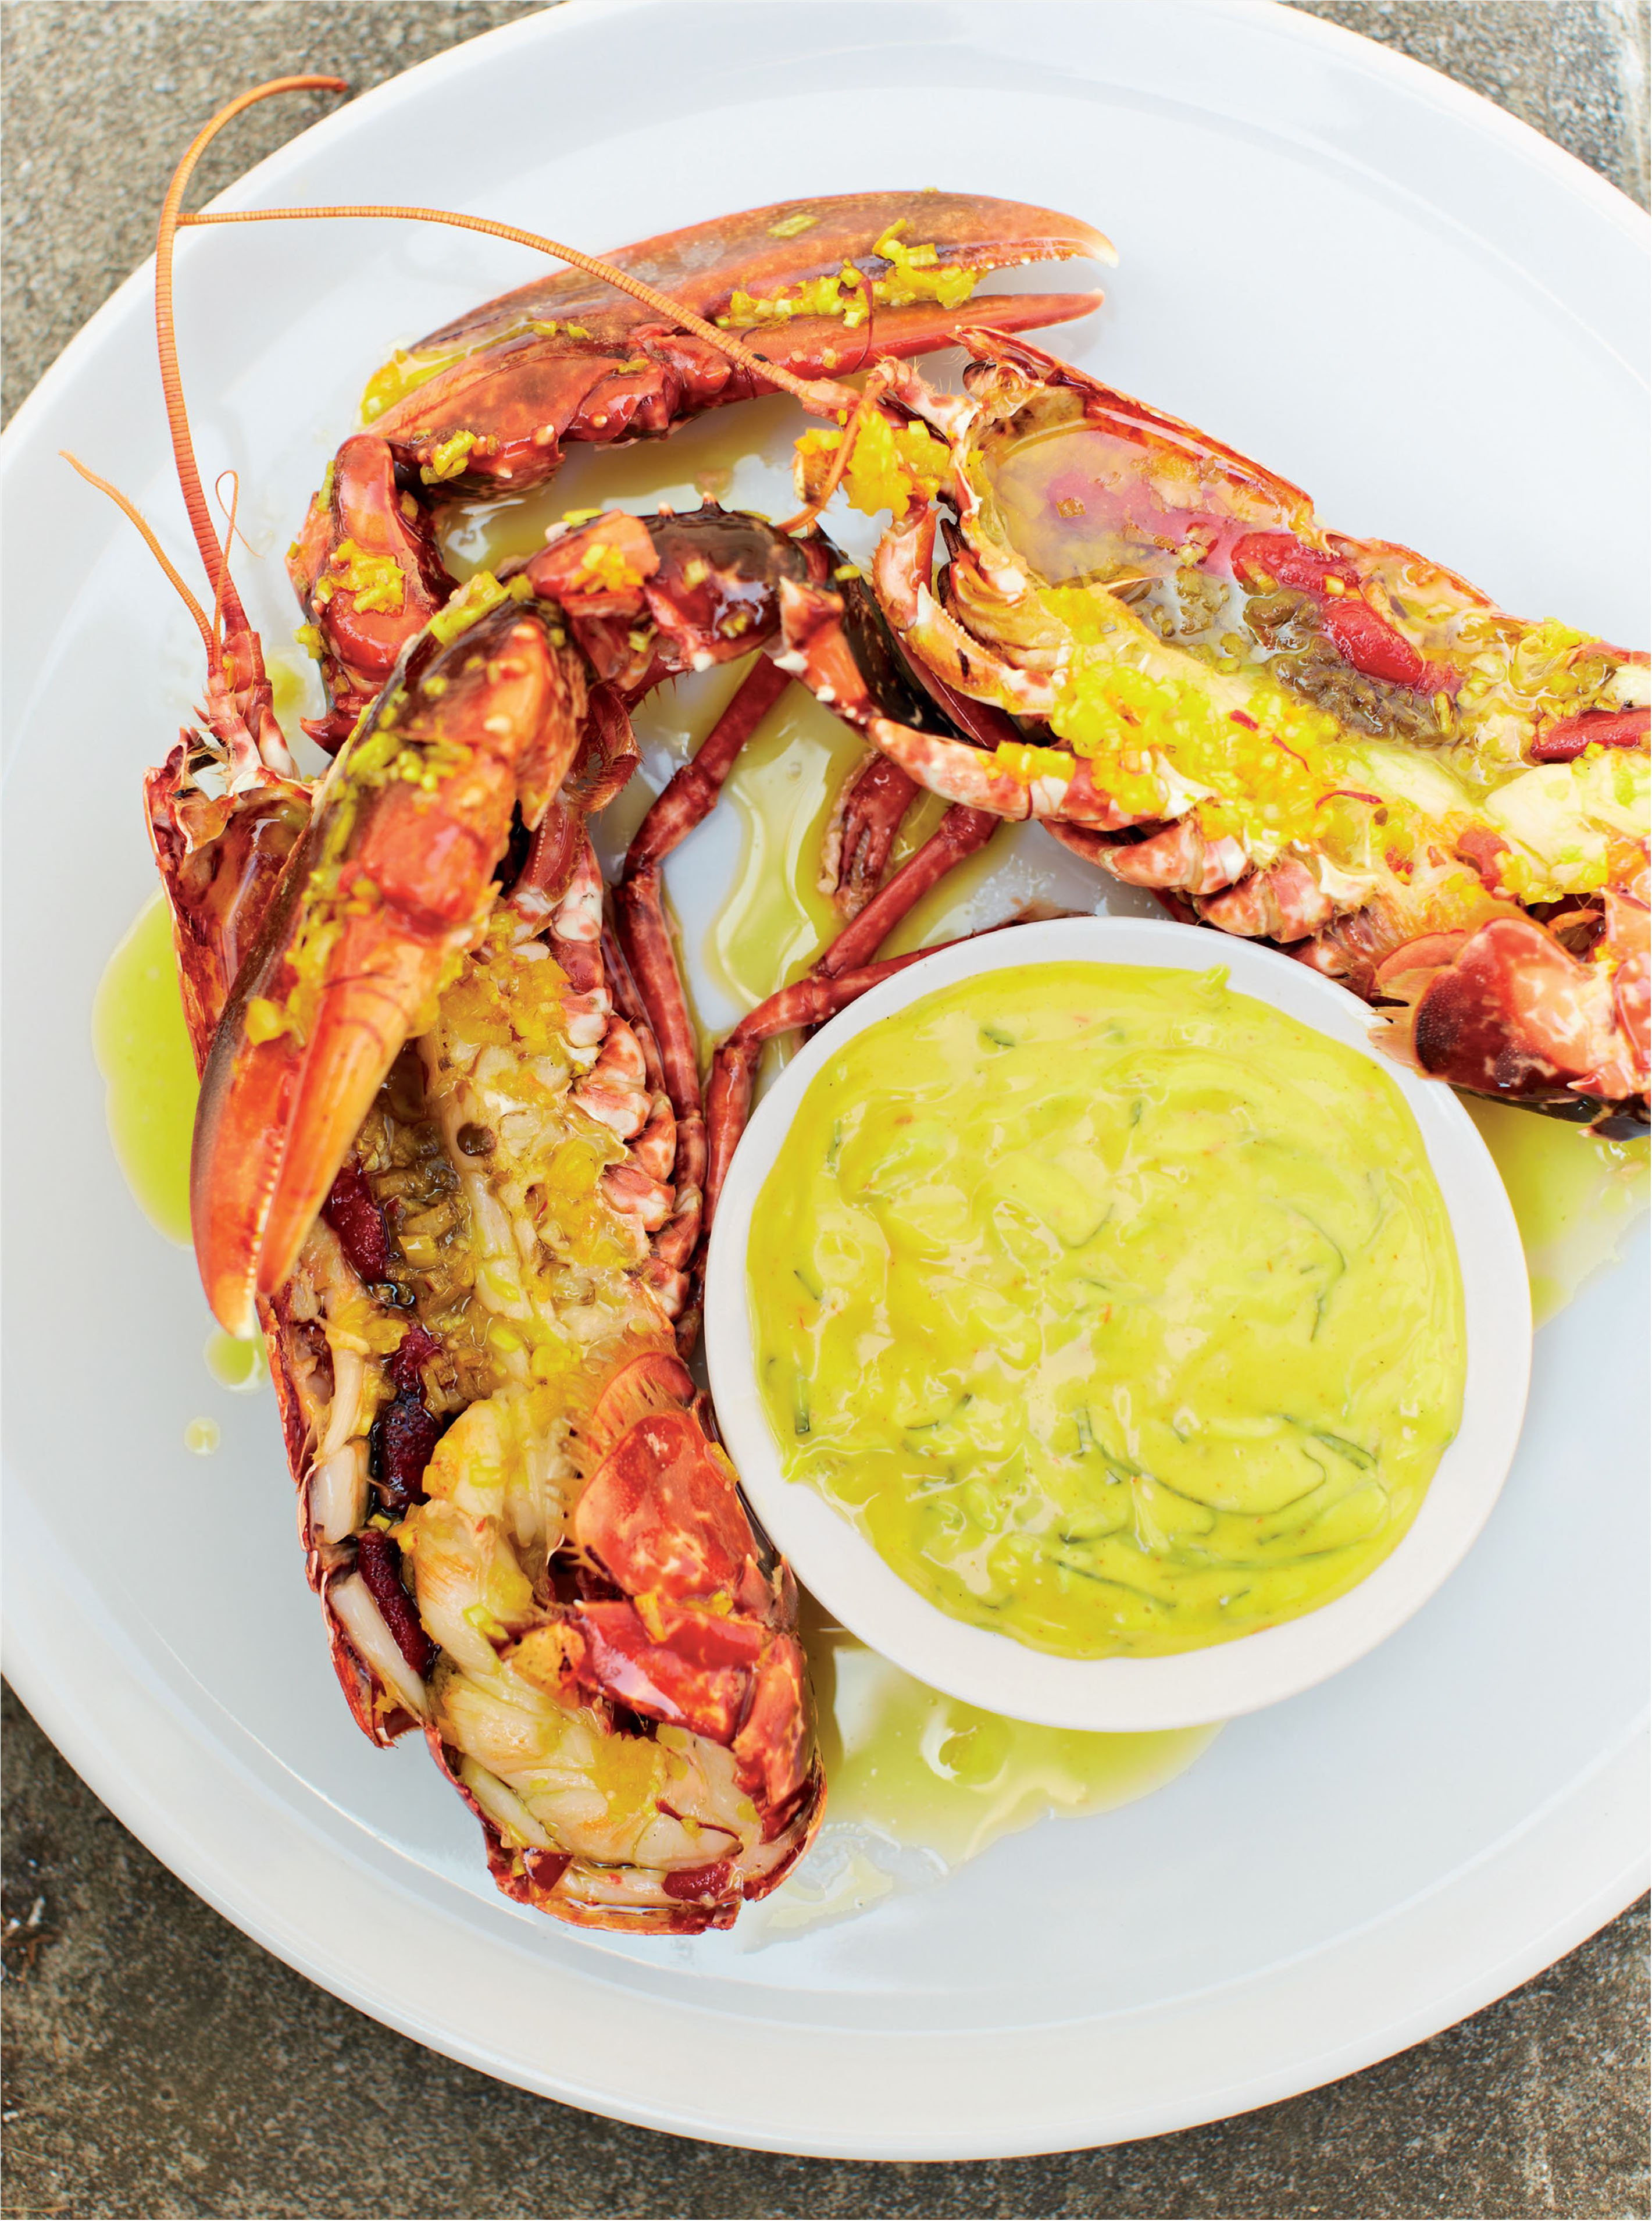 Smoked lobster with saffron and basil mayonnaise